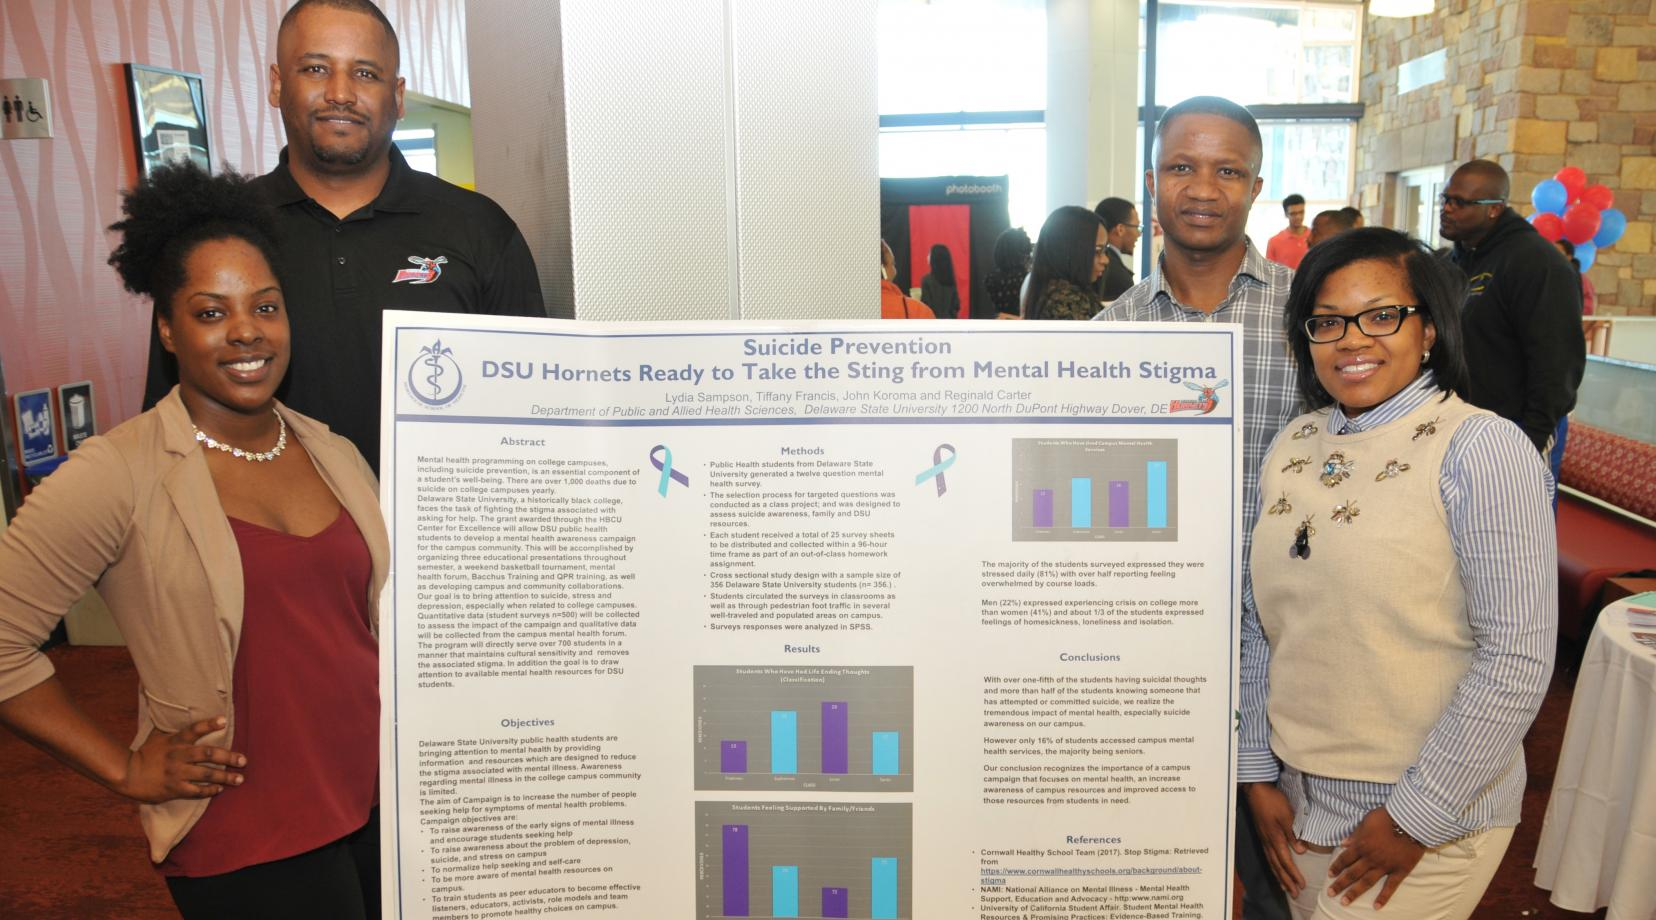 The first-place research poster winning team: (l-r) Lydia Sampson of Lewes, Del., Reginald Carter of Marydel, Md.; John Koroma from Sierra Leone, West Africa, and Tiffany Francis of Middletown, Del. All are senior Public Health majors at DSU.